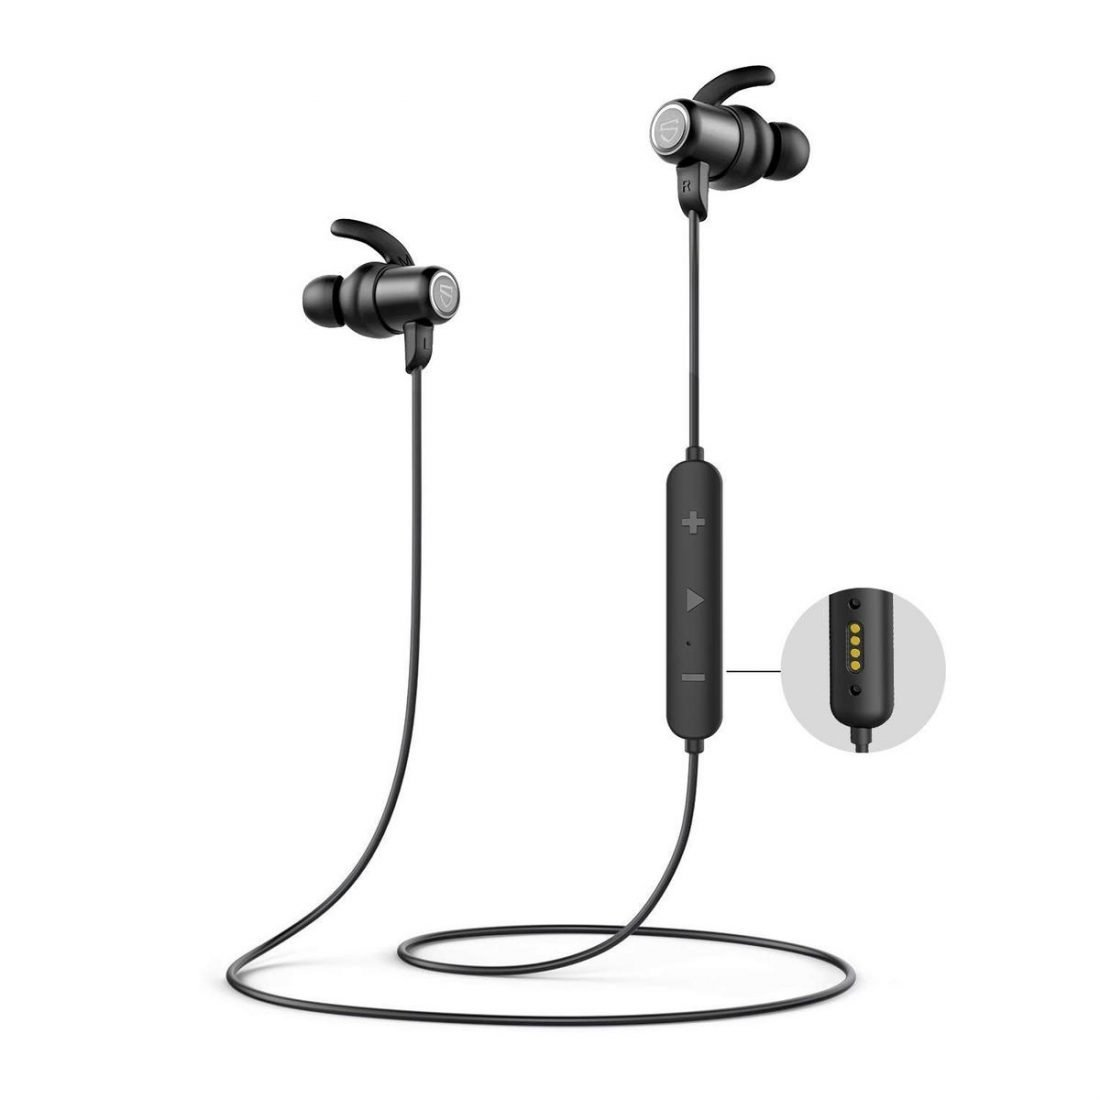 2020 10 Best Earbuds With Microphone That Are Great For Calls Headphonesty